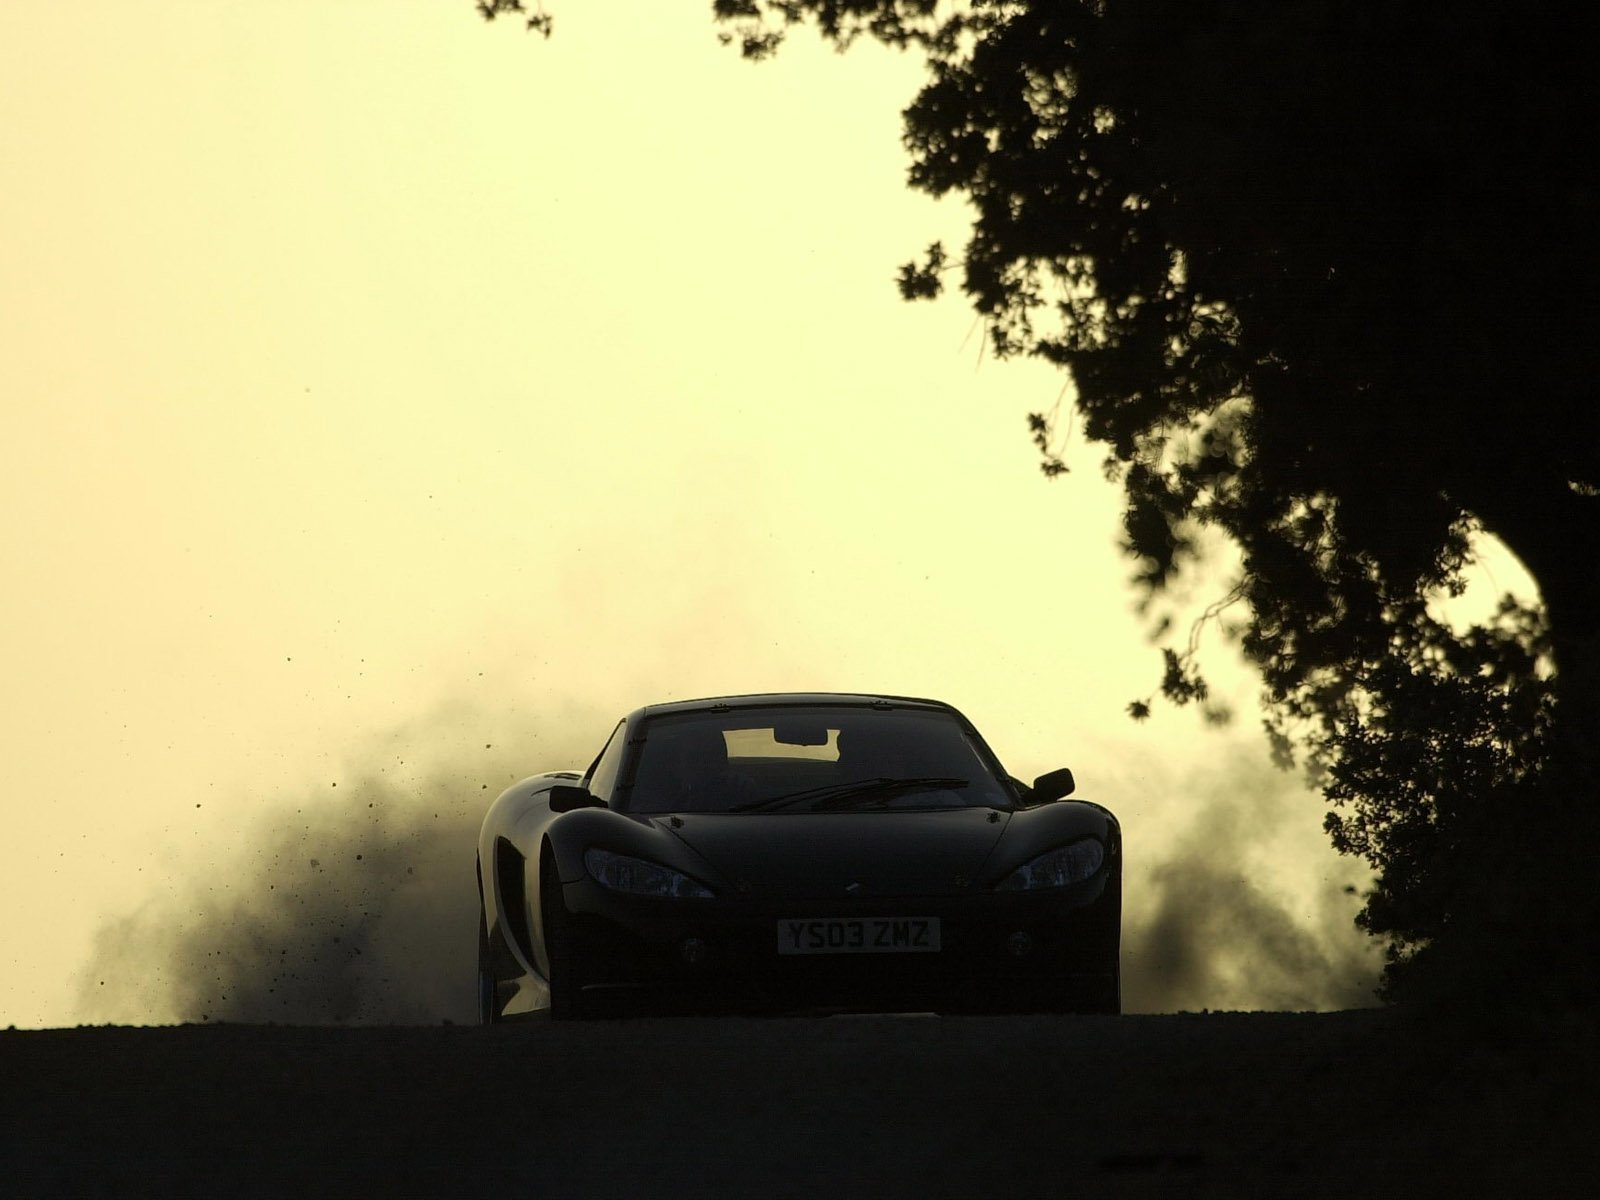 Latest Ascari Pictures Wallpapers Pics Photos Quality Images Free Download